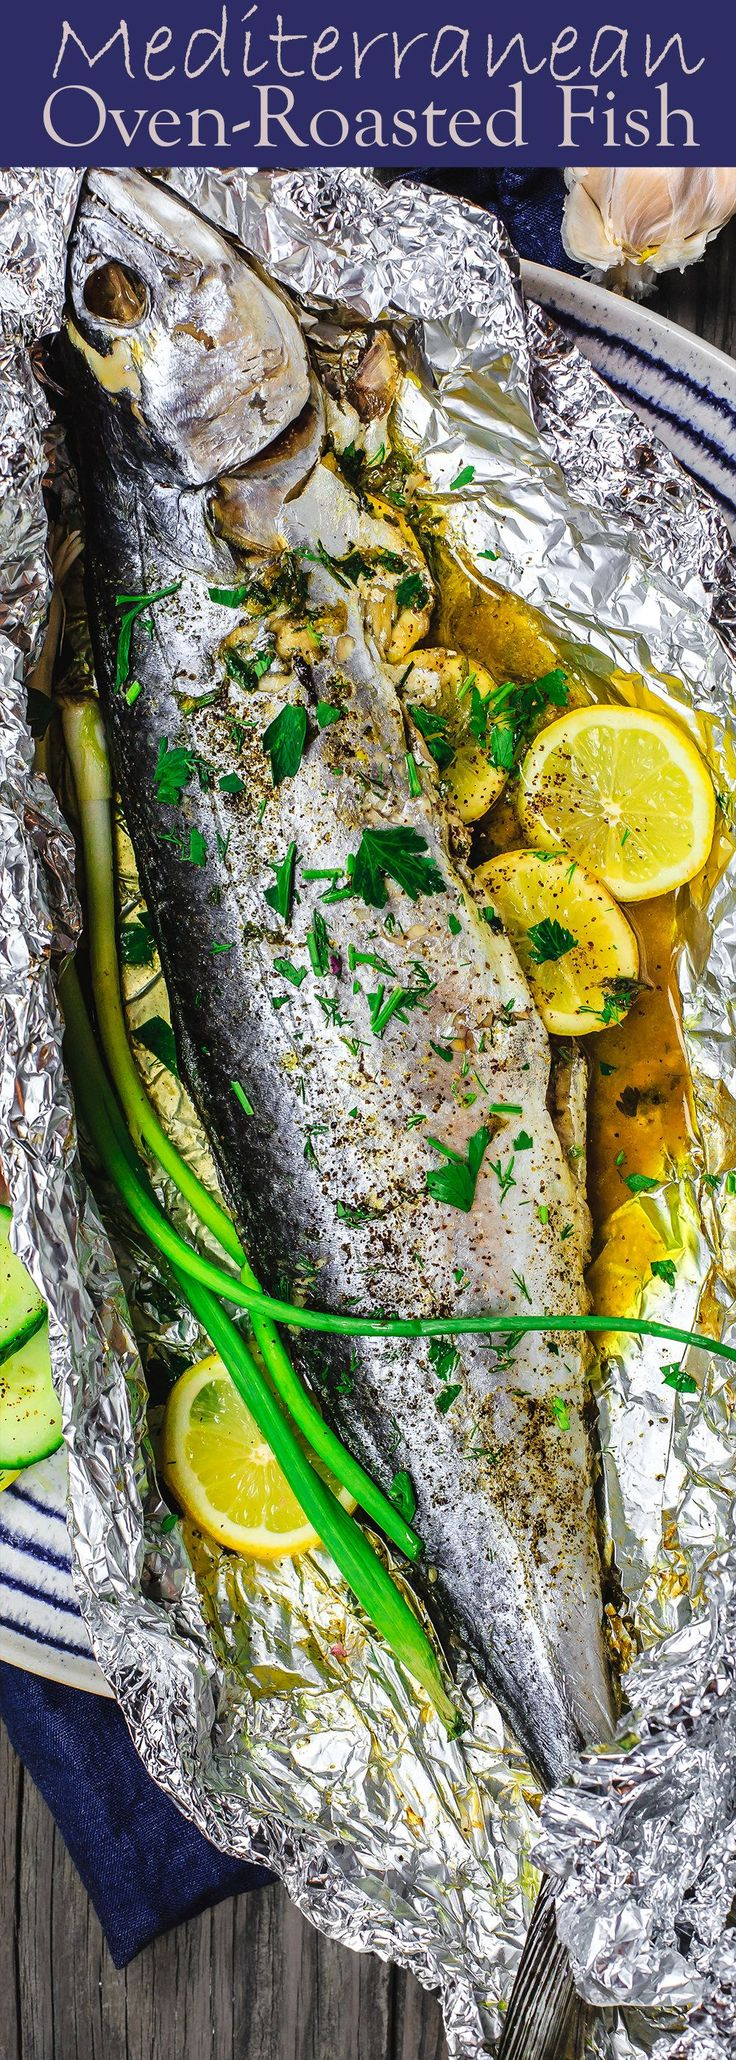 Mediterranean Oven Baked Spanish Mackerel Recipe | The Mediterranean Dish. Easy Greek inspired fish recipe. Whole fish stuffed with garlic, herbs, and lemon slices and oven baked in a foil packet with olive oil. A delicious Mediterranean diet recipe. See it on TheMediterraneanDish.com